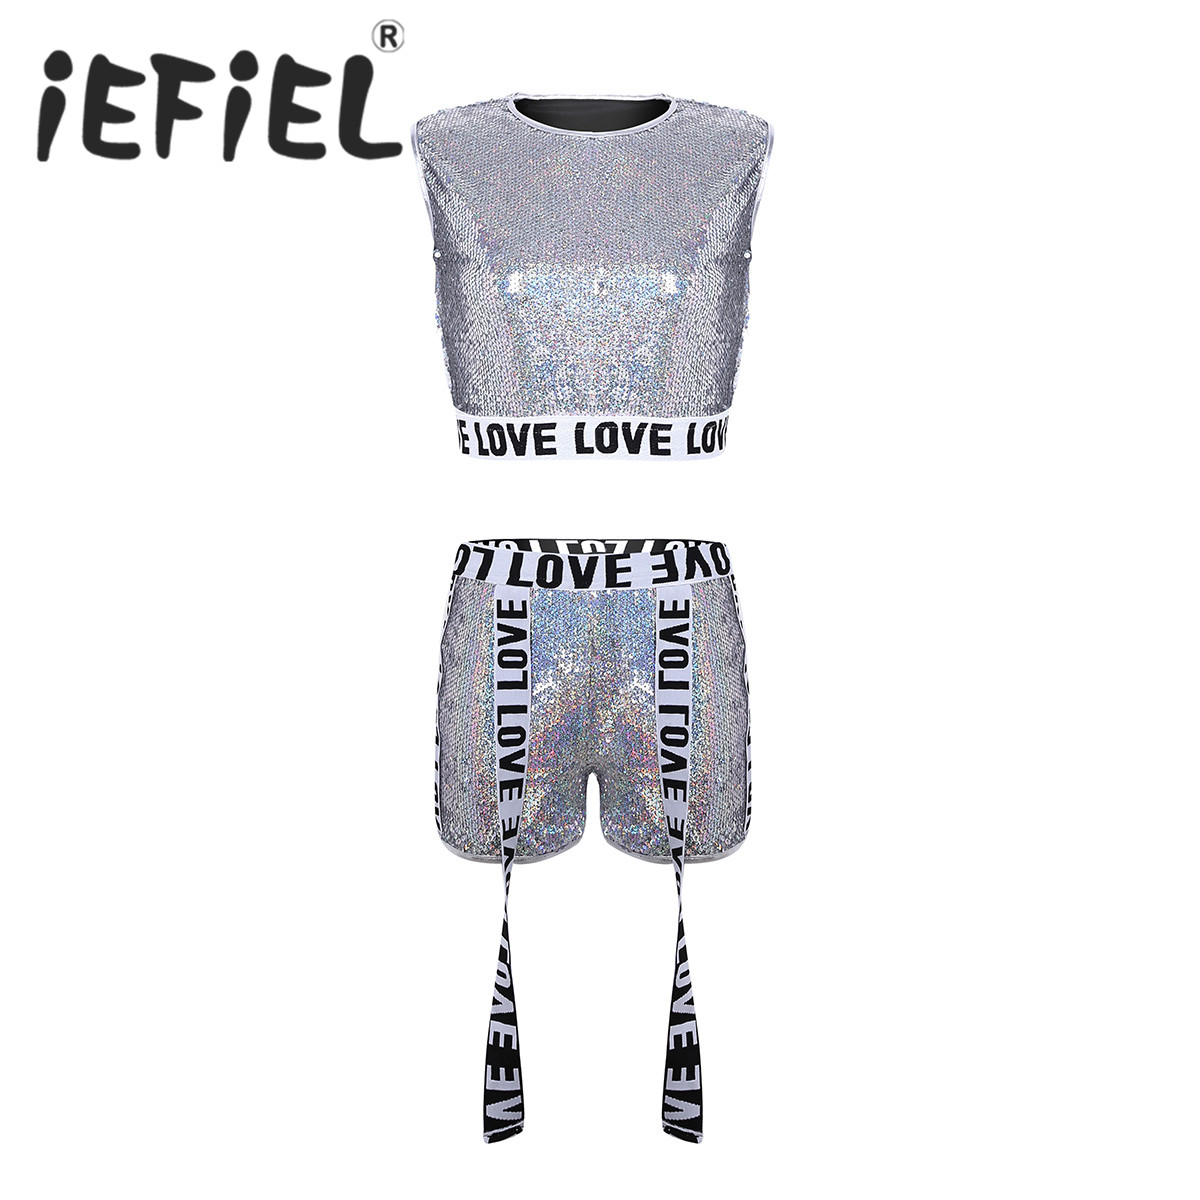 Female Women Sparkle Shiny Sequins Dance Suits Sleeveless Vest Crop Top with Shorts for Jazz Hip Hop Dancewear Stage Performance